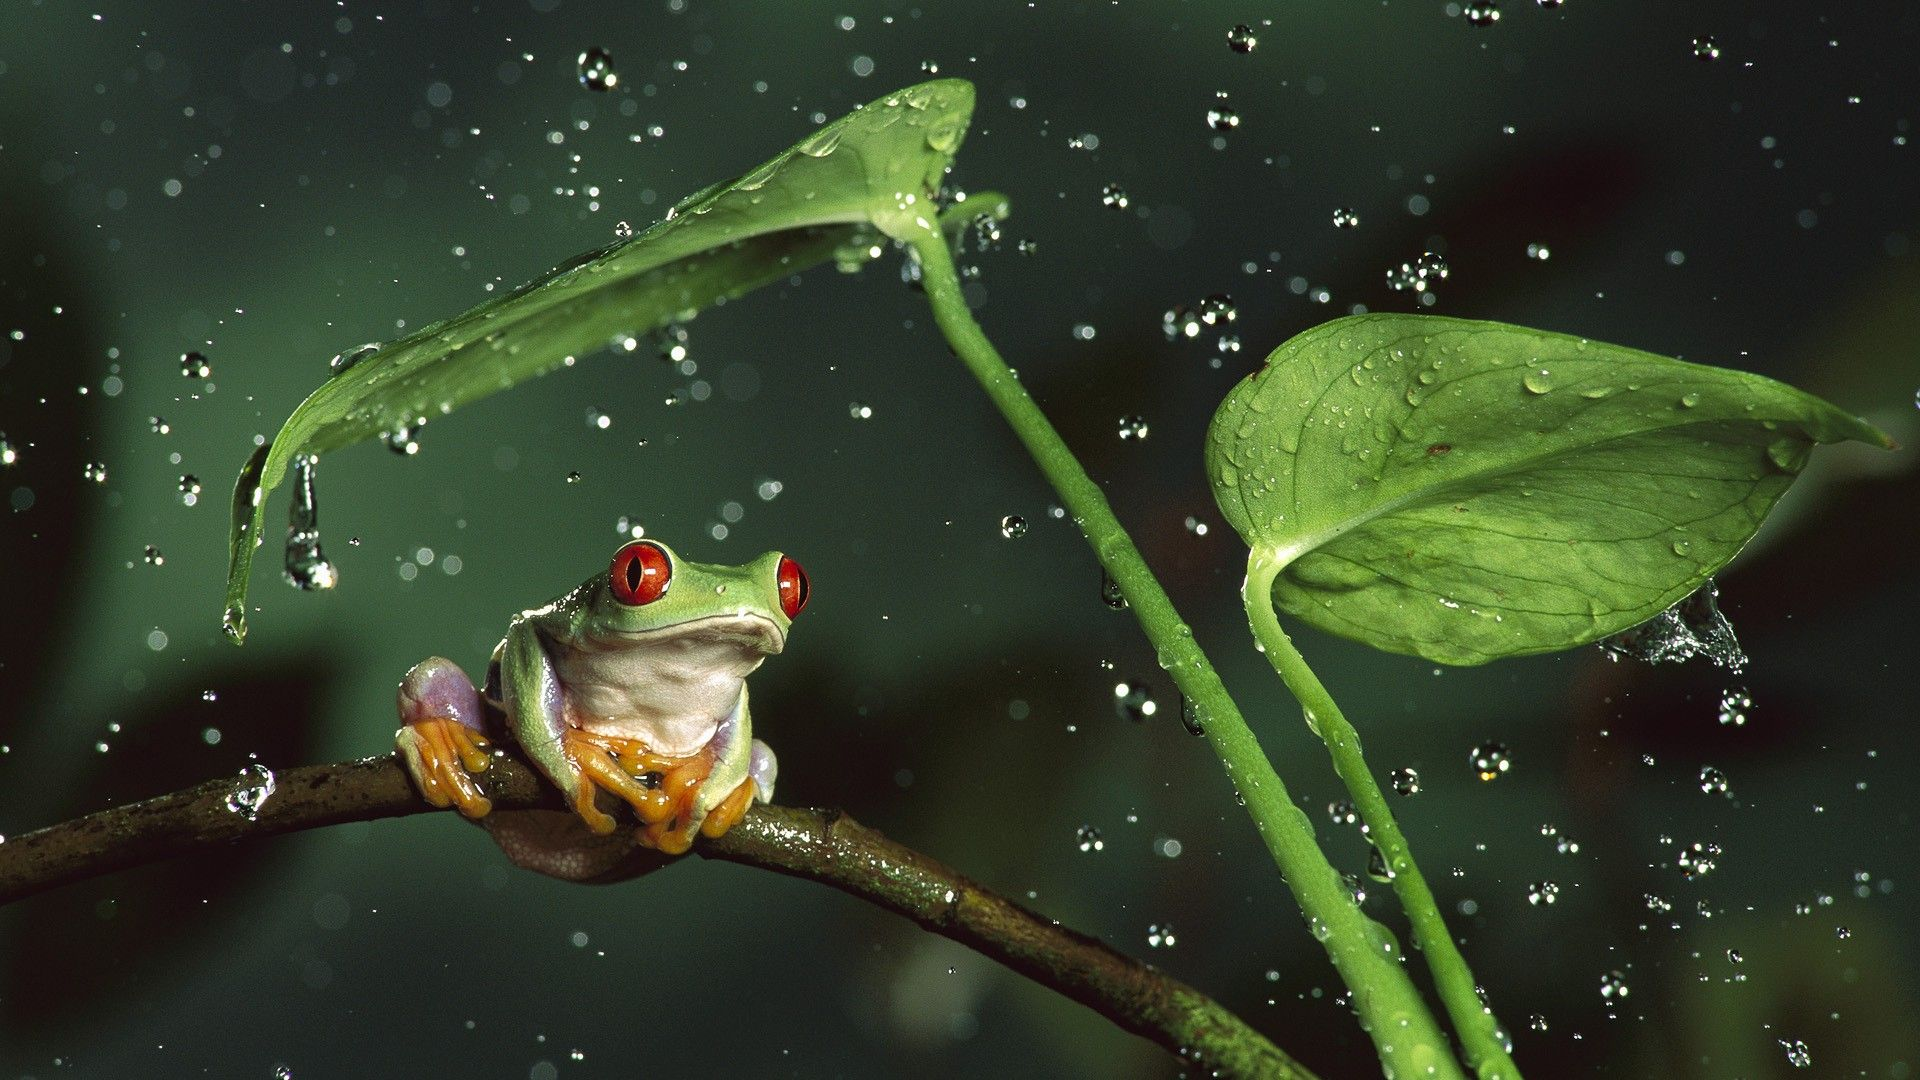 Frog Macro Photography Water In Motion 1920x1080